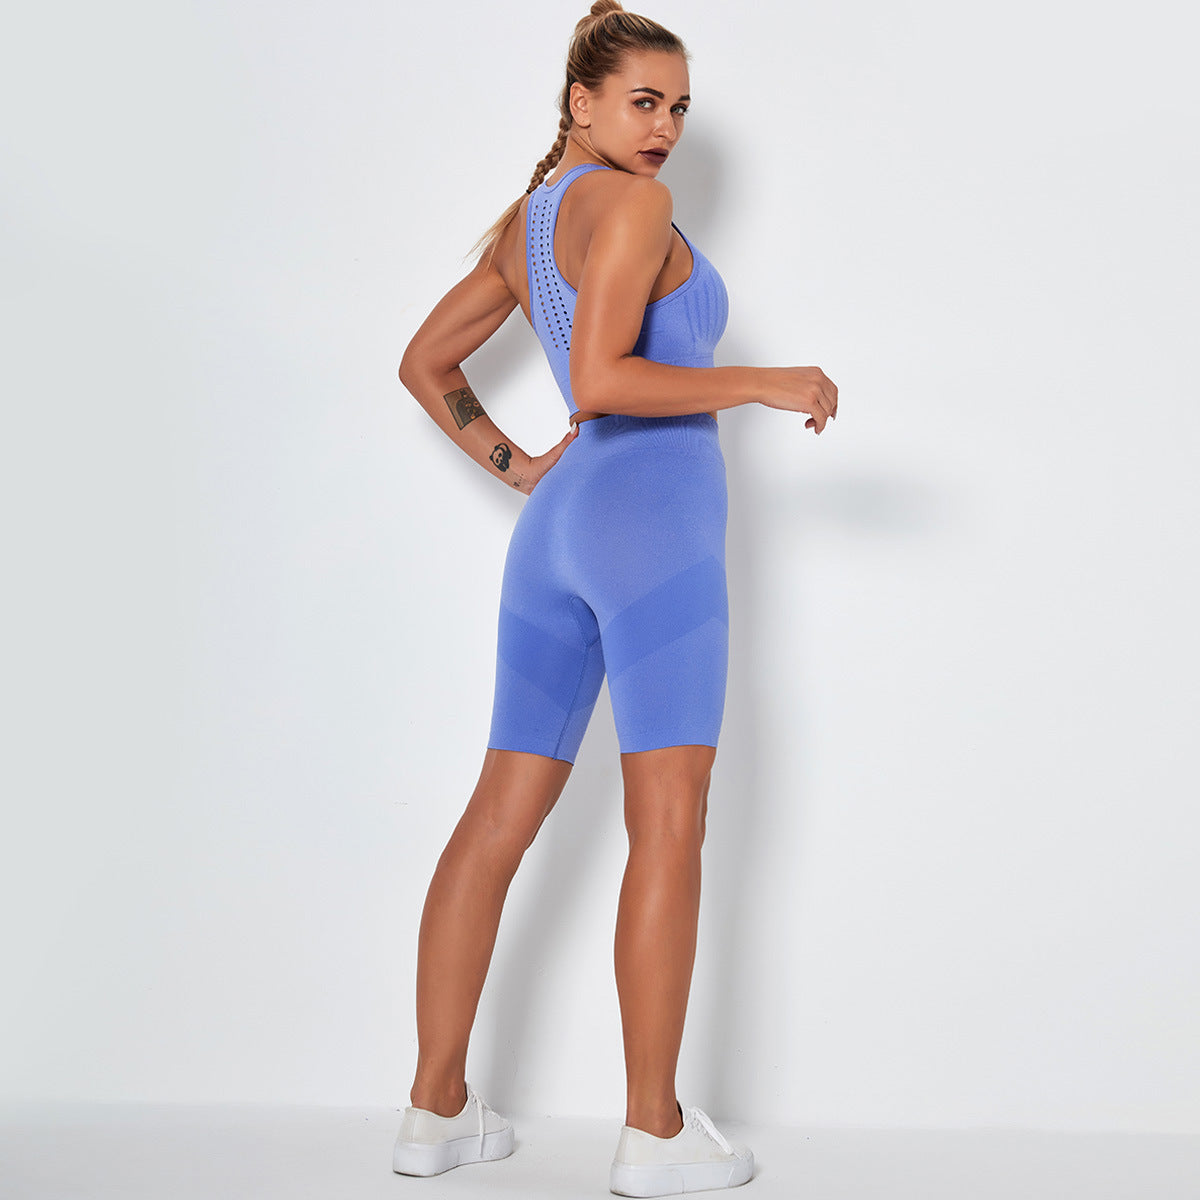 2020 Women Seamless Sexy Slim Yoga Suit Sports Bra Suit Running Suit Fitness Suit YS-051